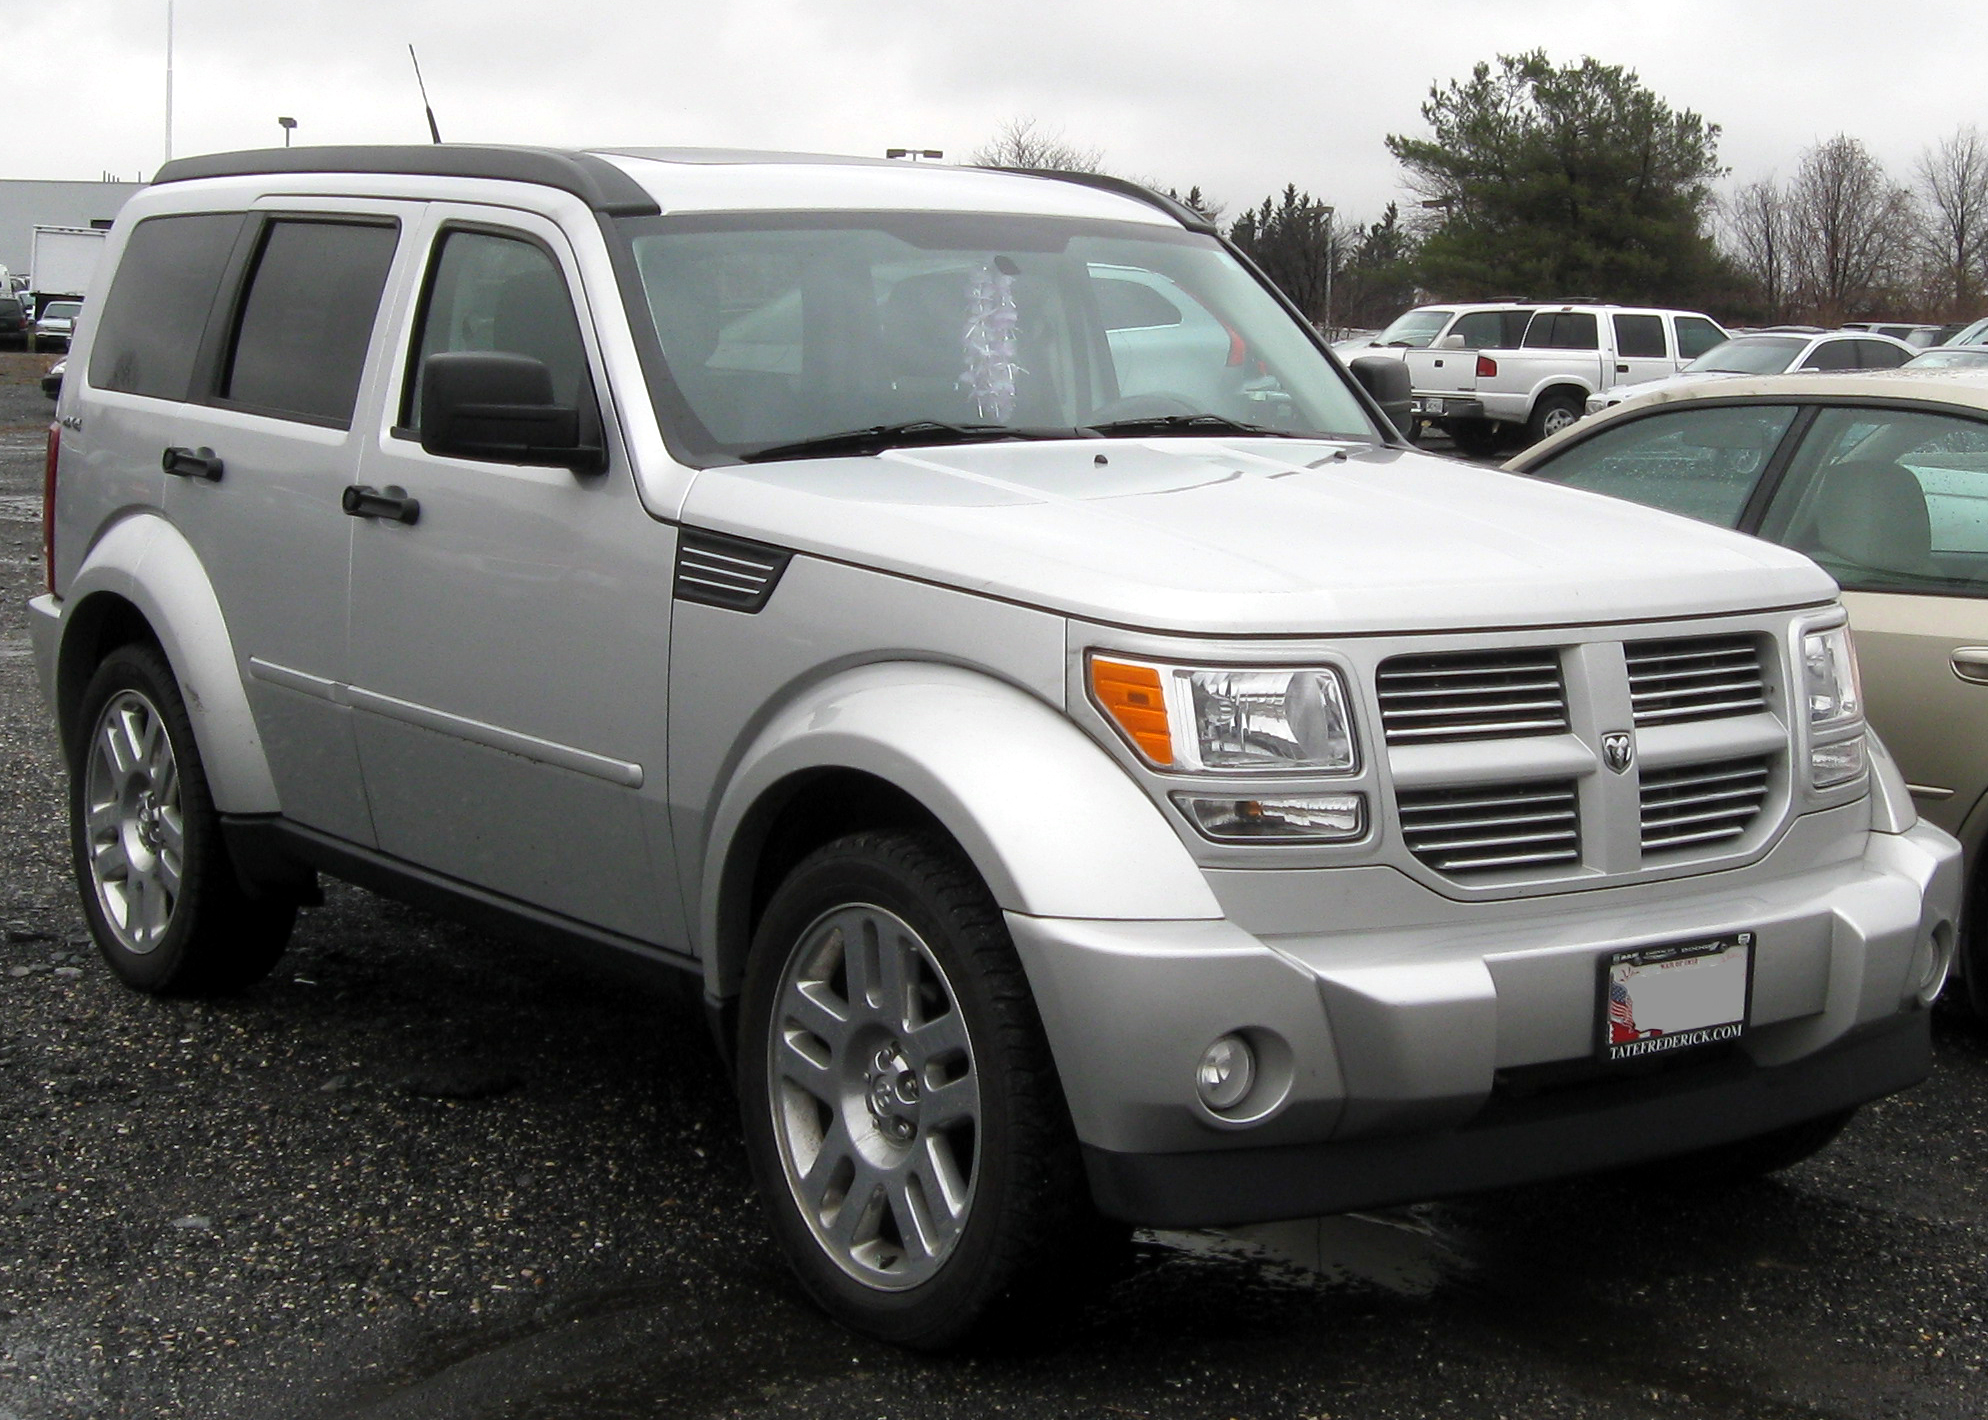 Dodge Nitro   pictures, information and specs - Auto-Database.com